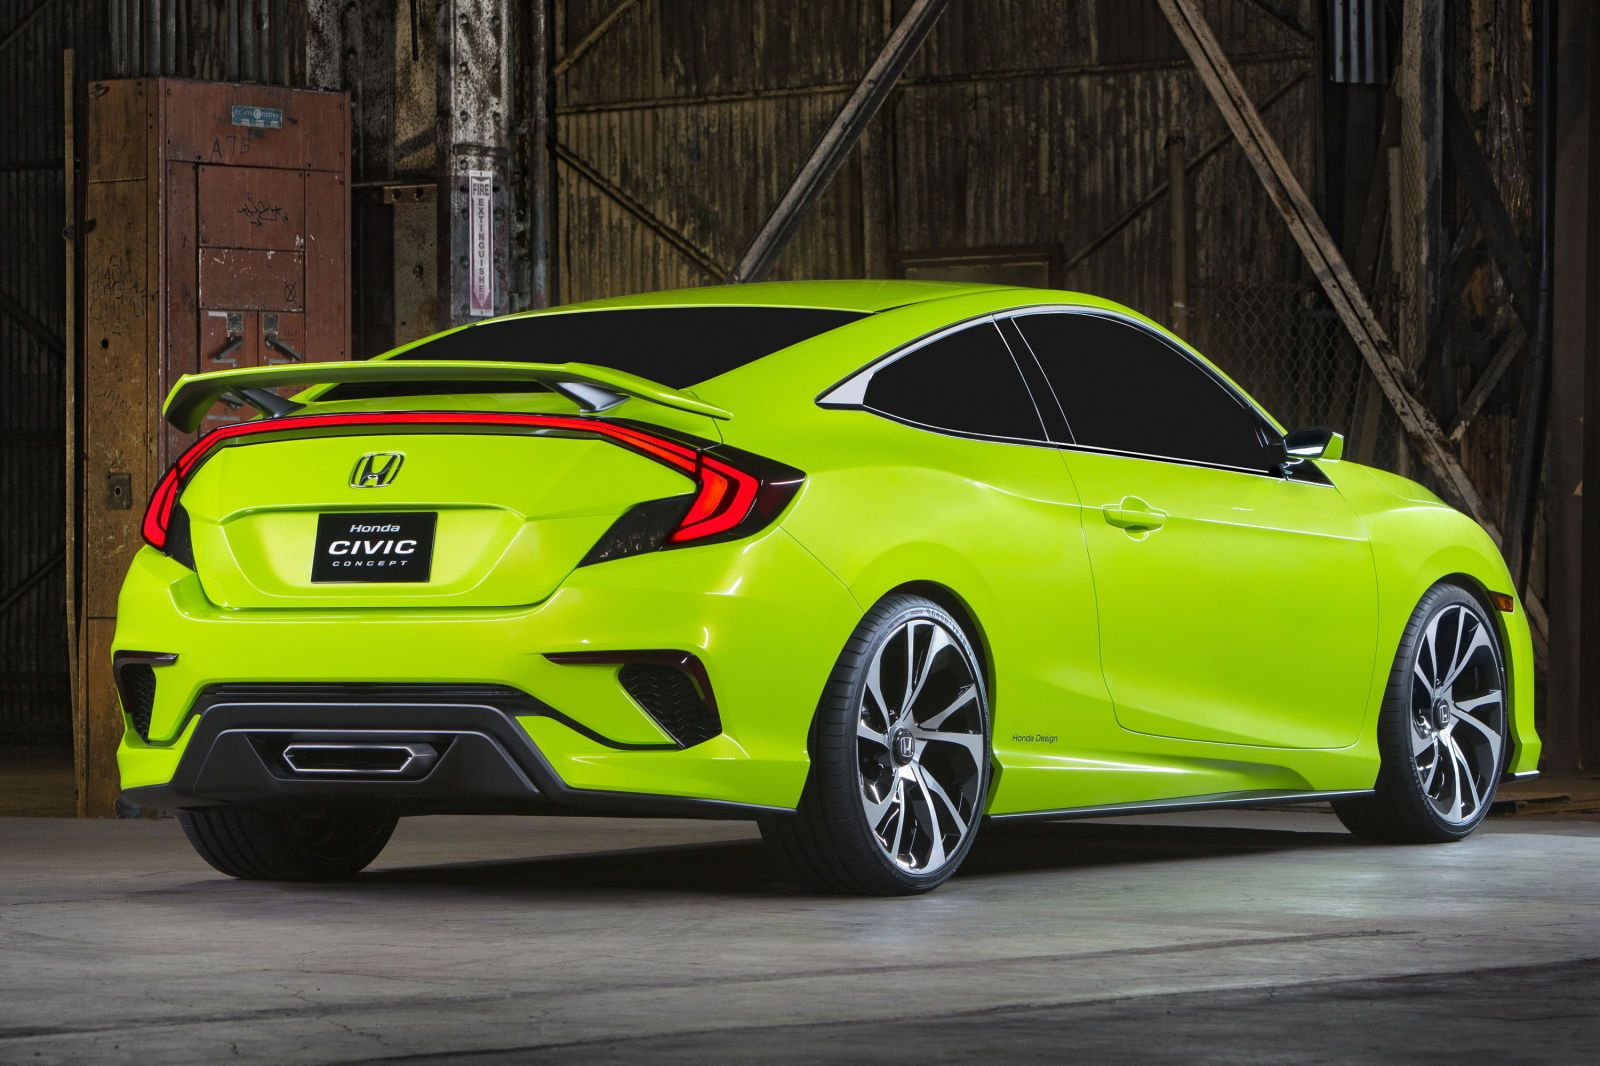 2018 Honda Civic Type R production. Introduced at the